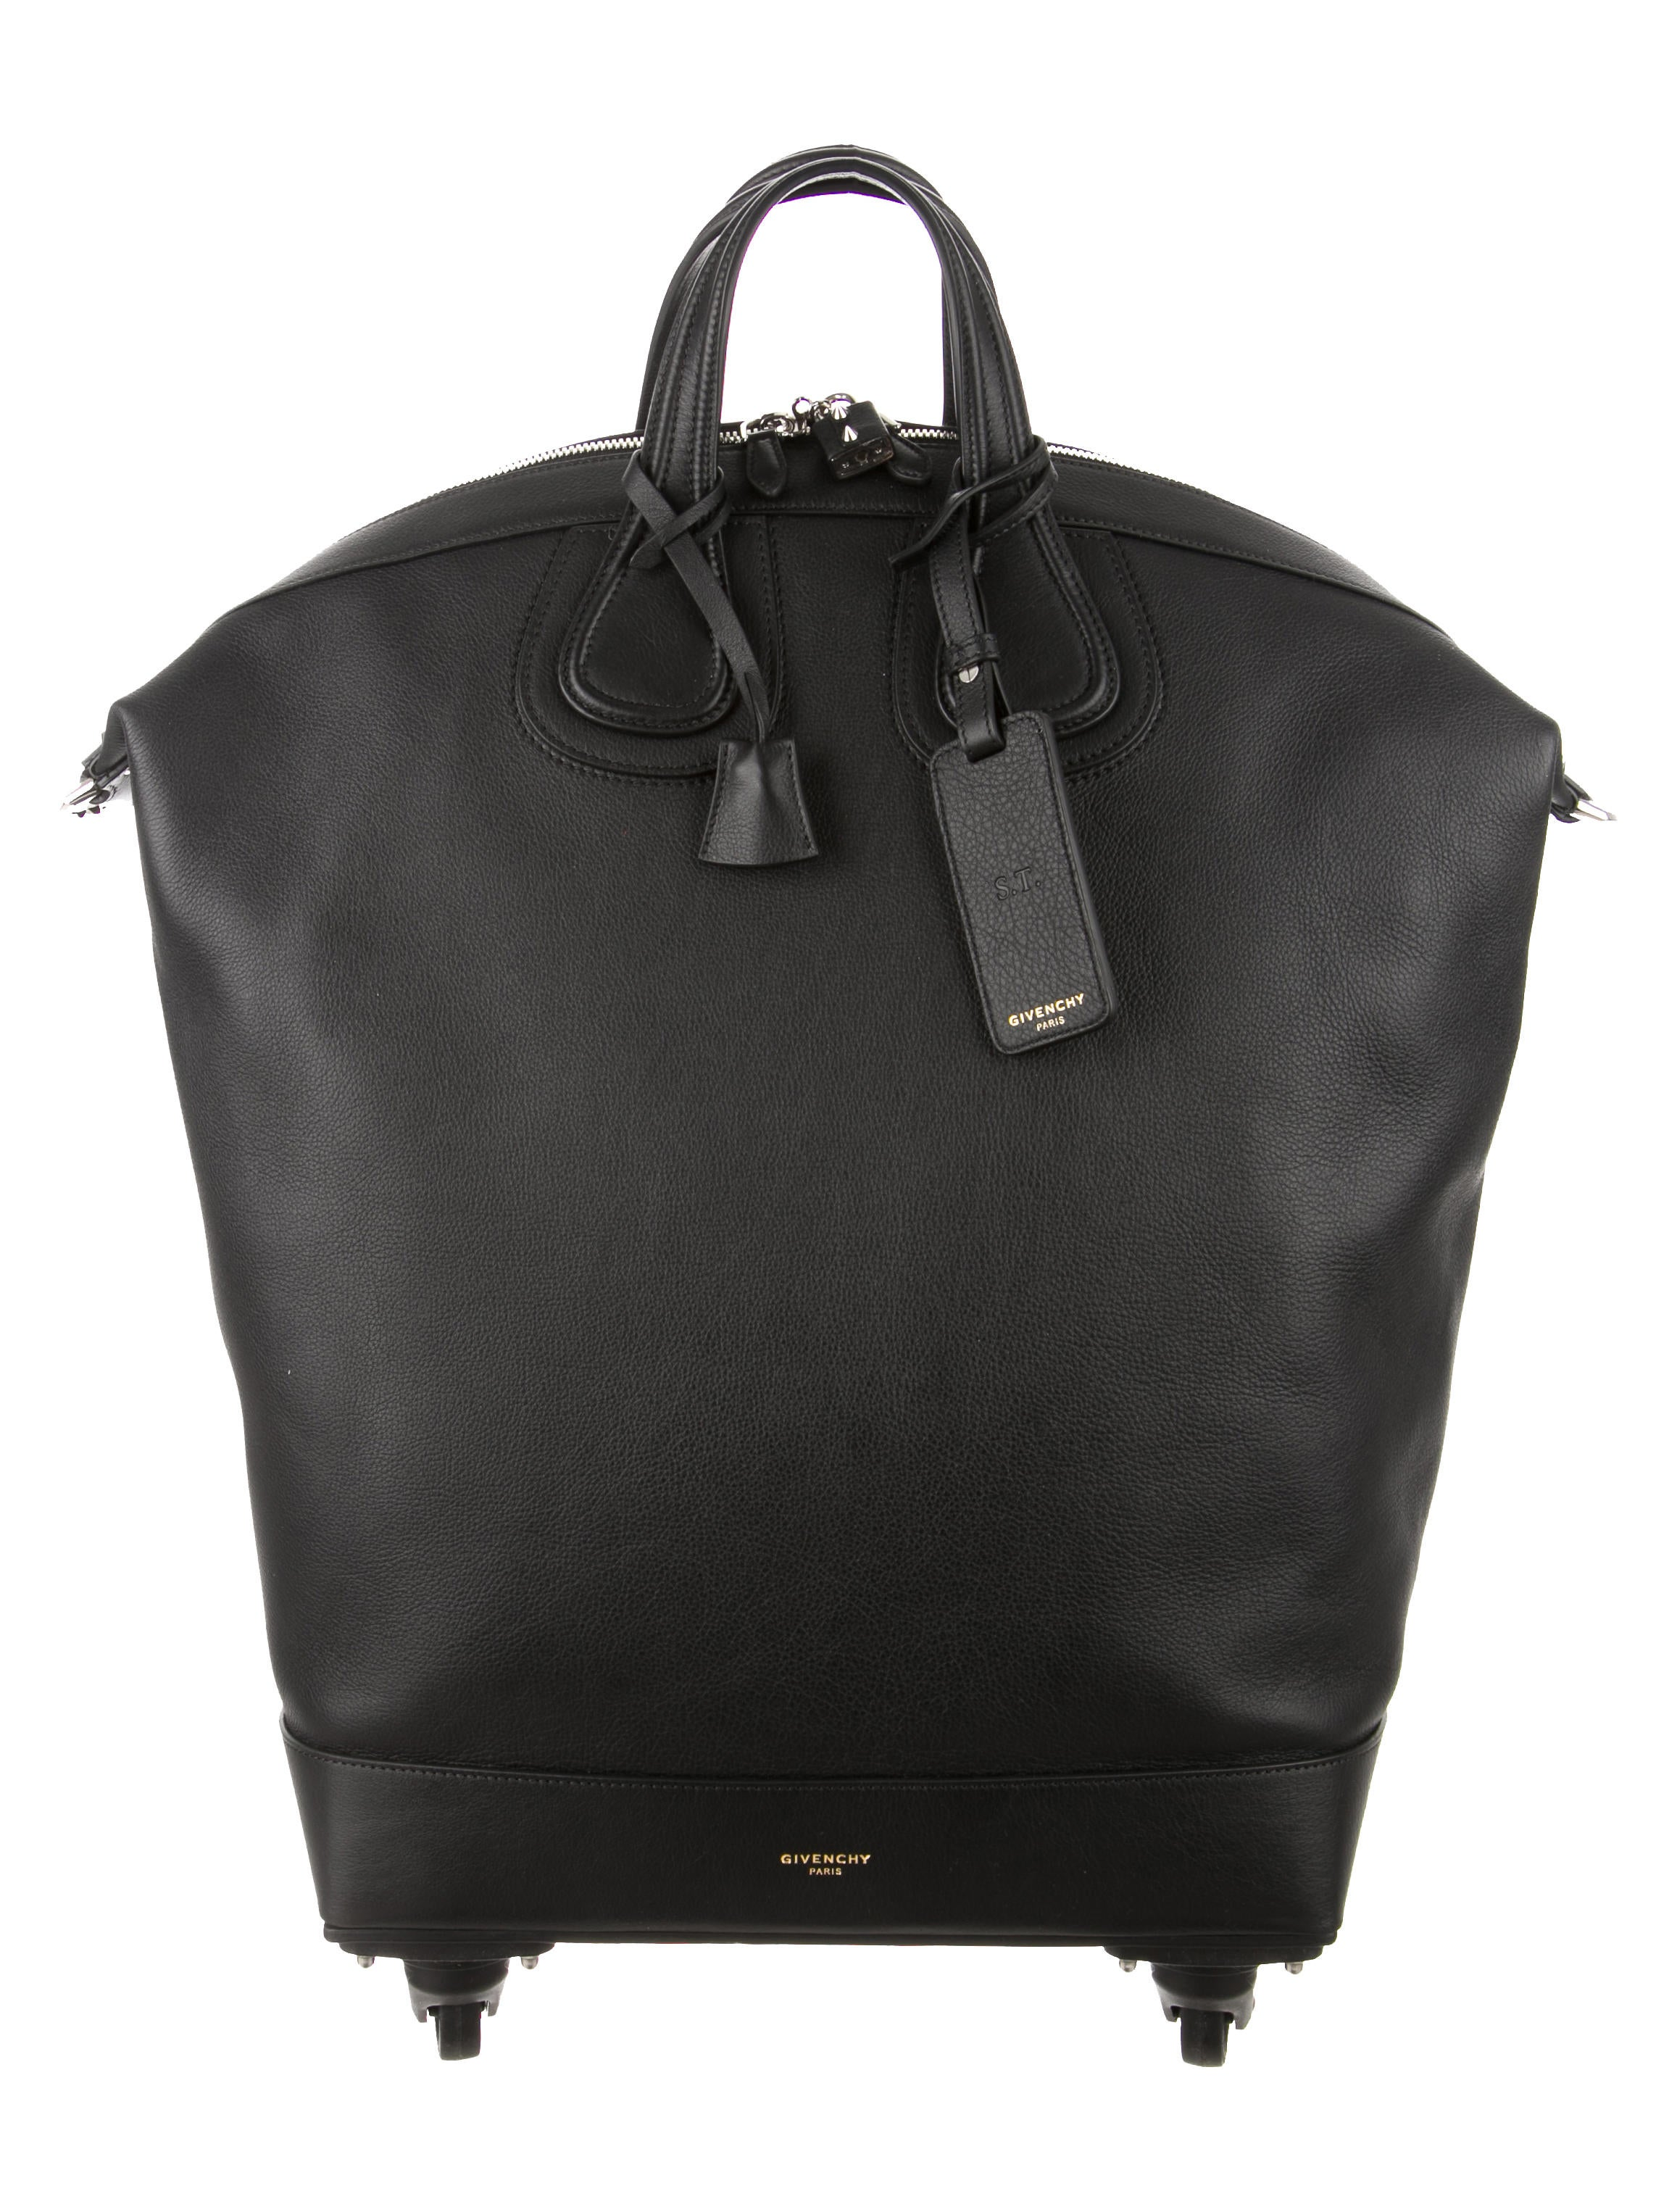 052f2172d51d Givenchy Nightingale Trolley Bag - Luggage - GIV34689